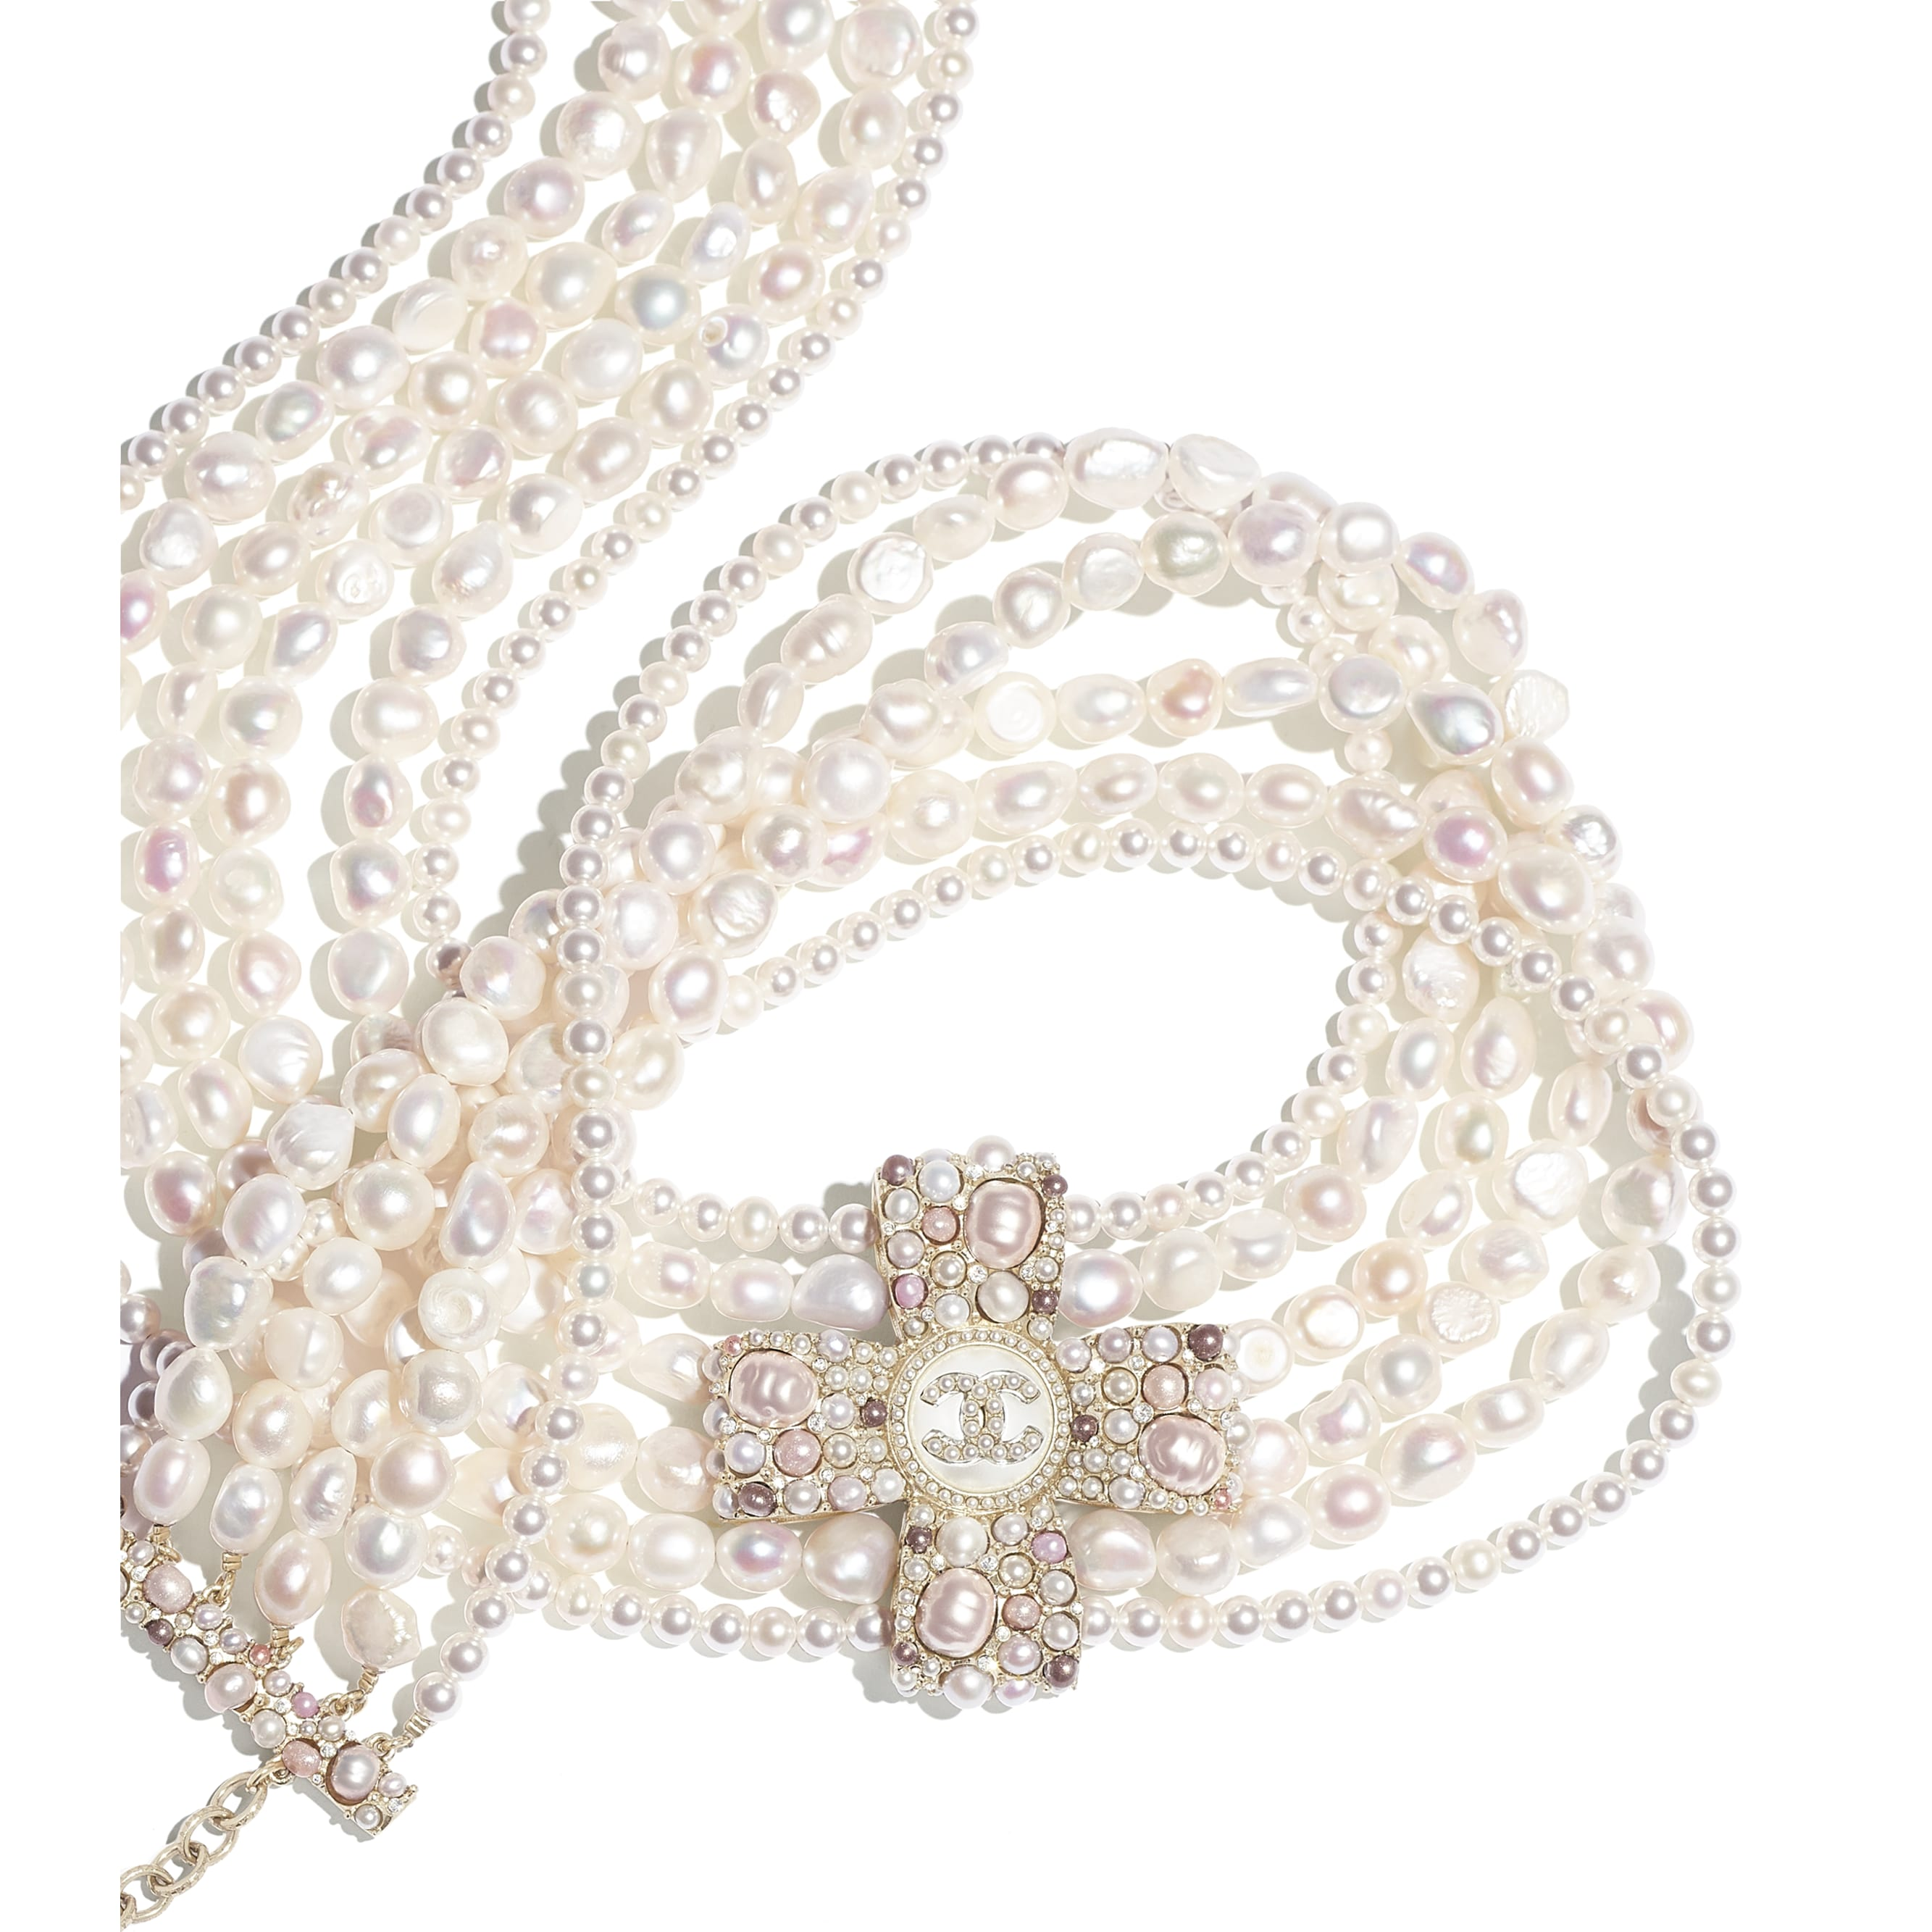 Belt - Gold, Pearly White, Pink & Crystal - Metal, Cultured Fresh Water Pearls, Glass Pearls, Imitation Pearls & Diamanté - CHANEL - Alternative view - see standard sized version